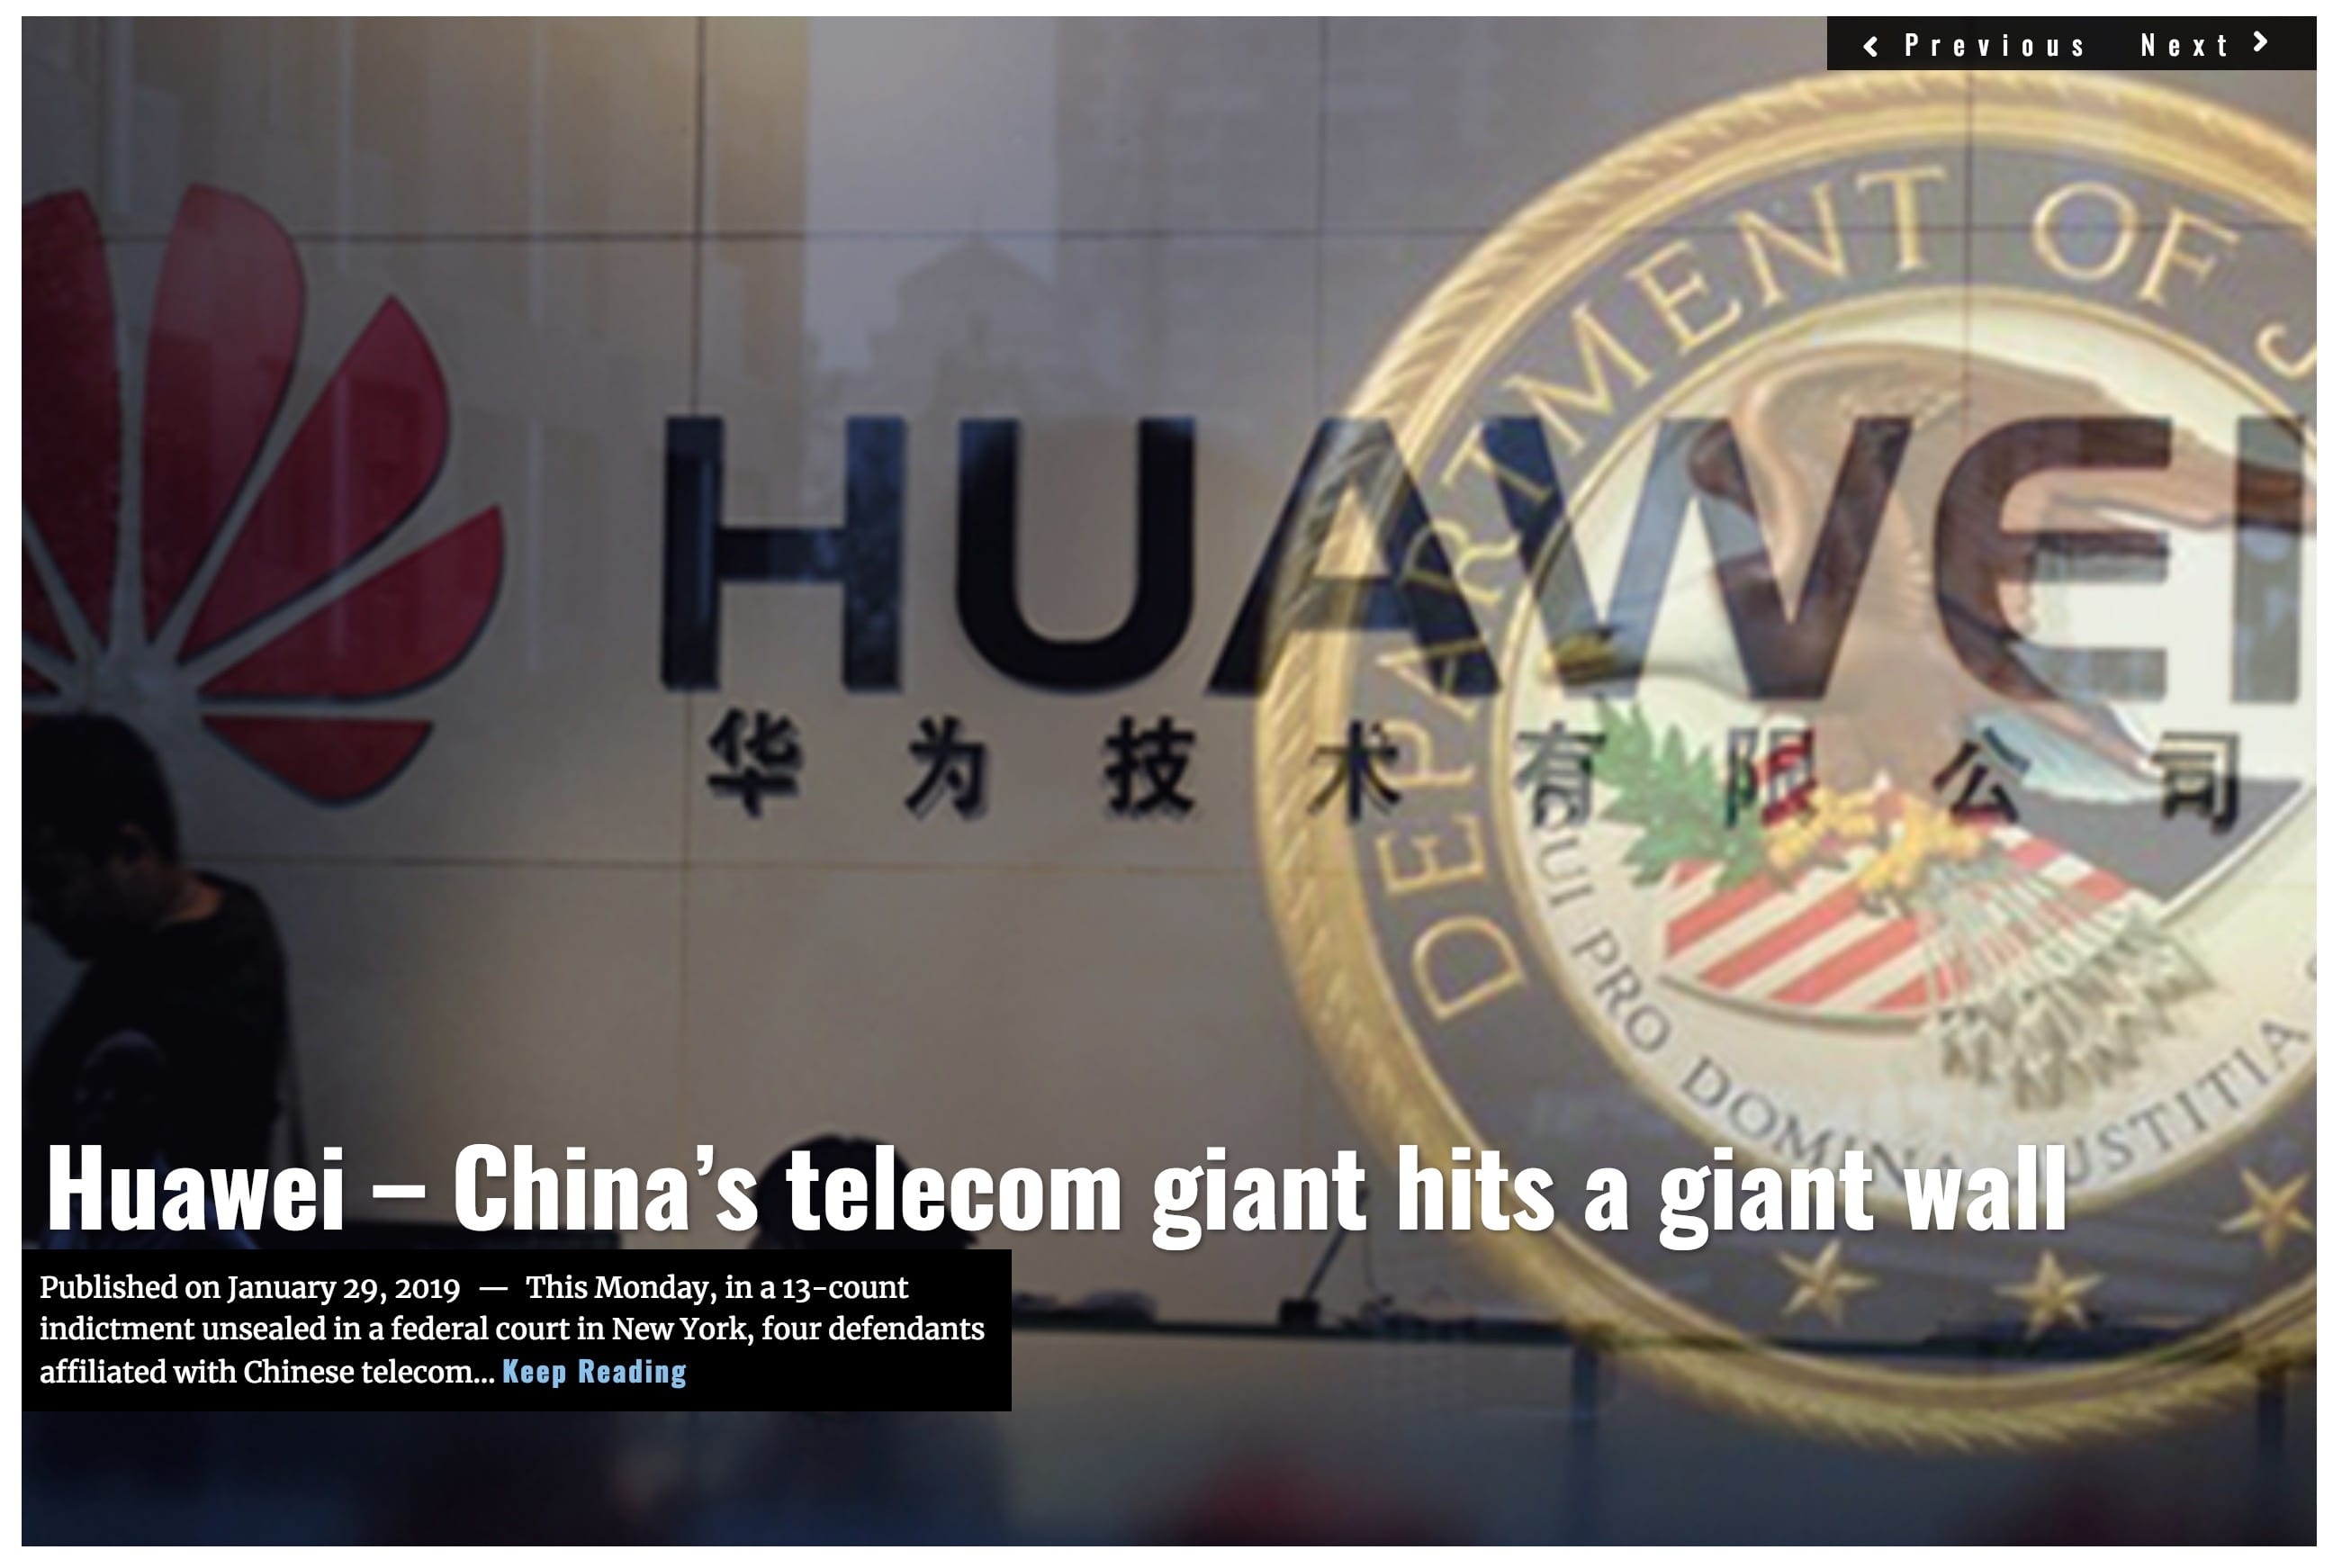 Image Lima Charlie News Headline - Huawei China